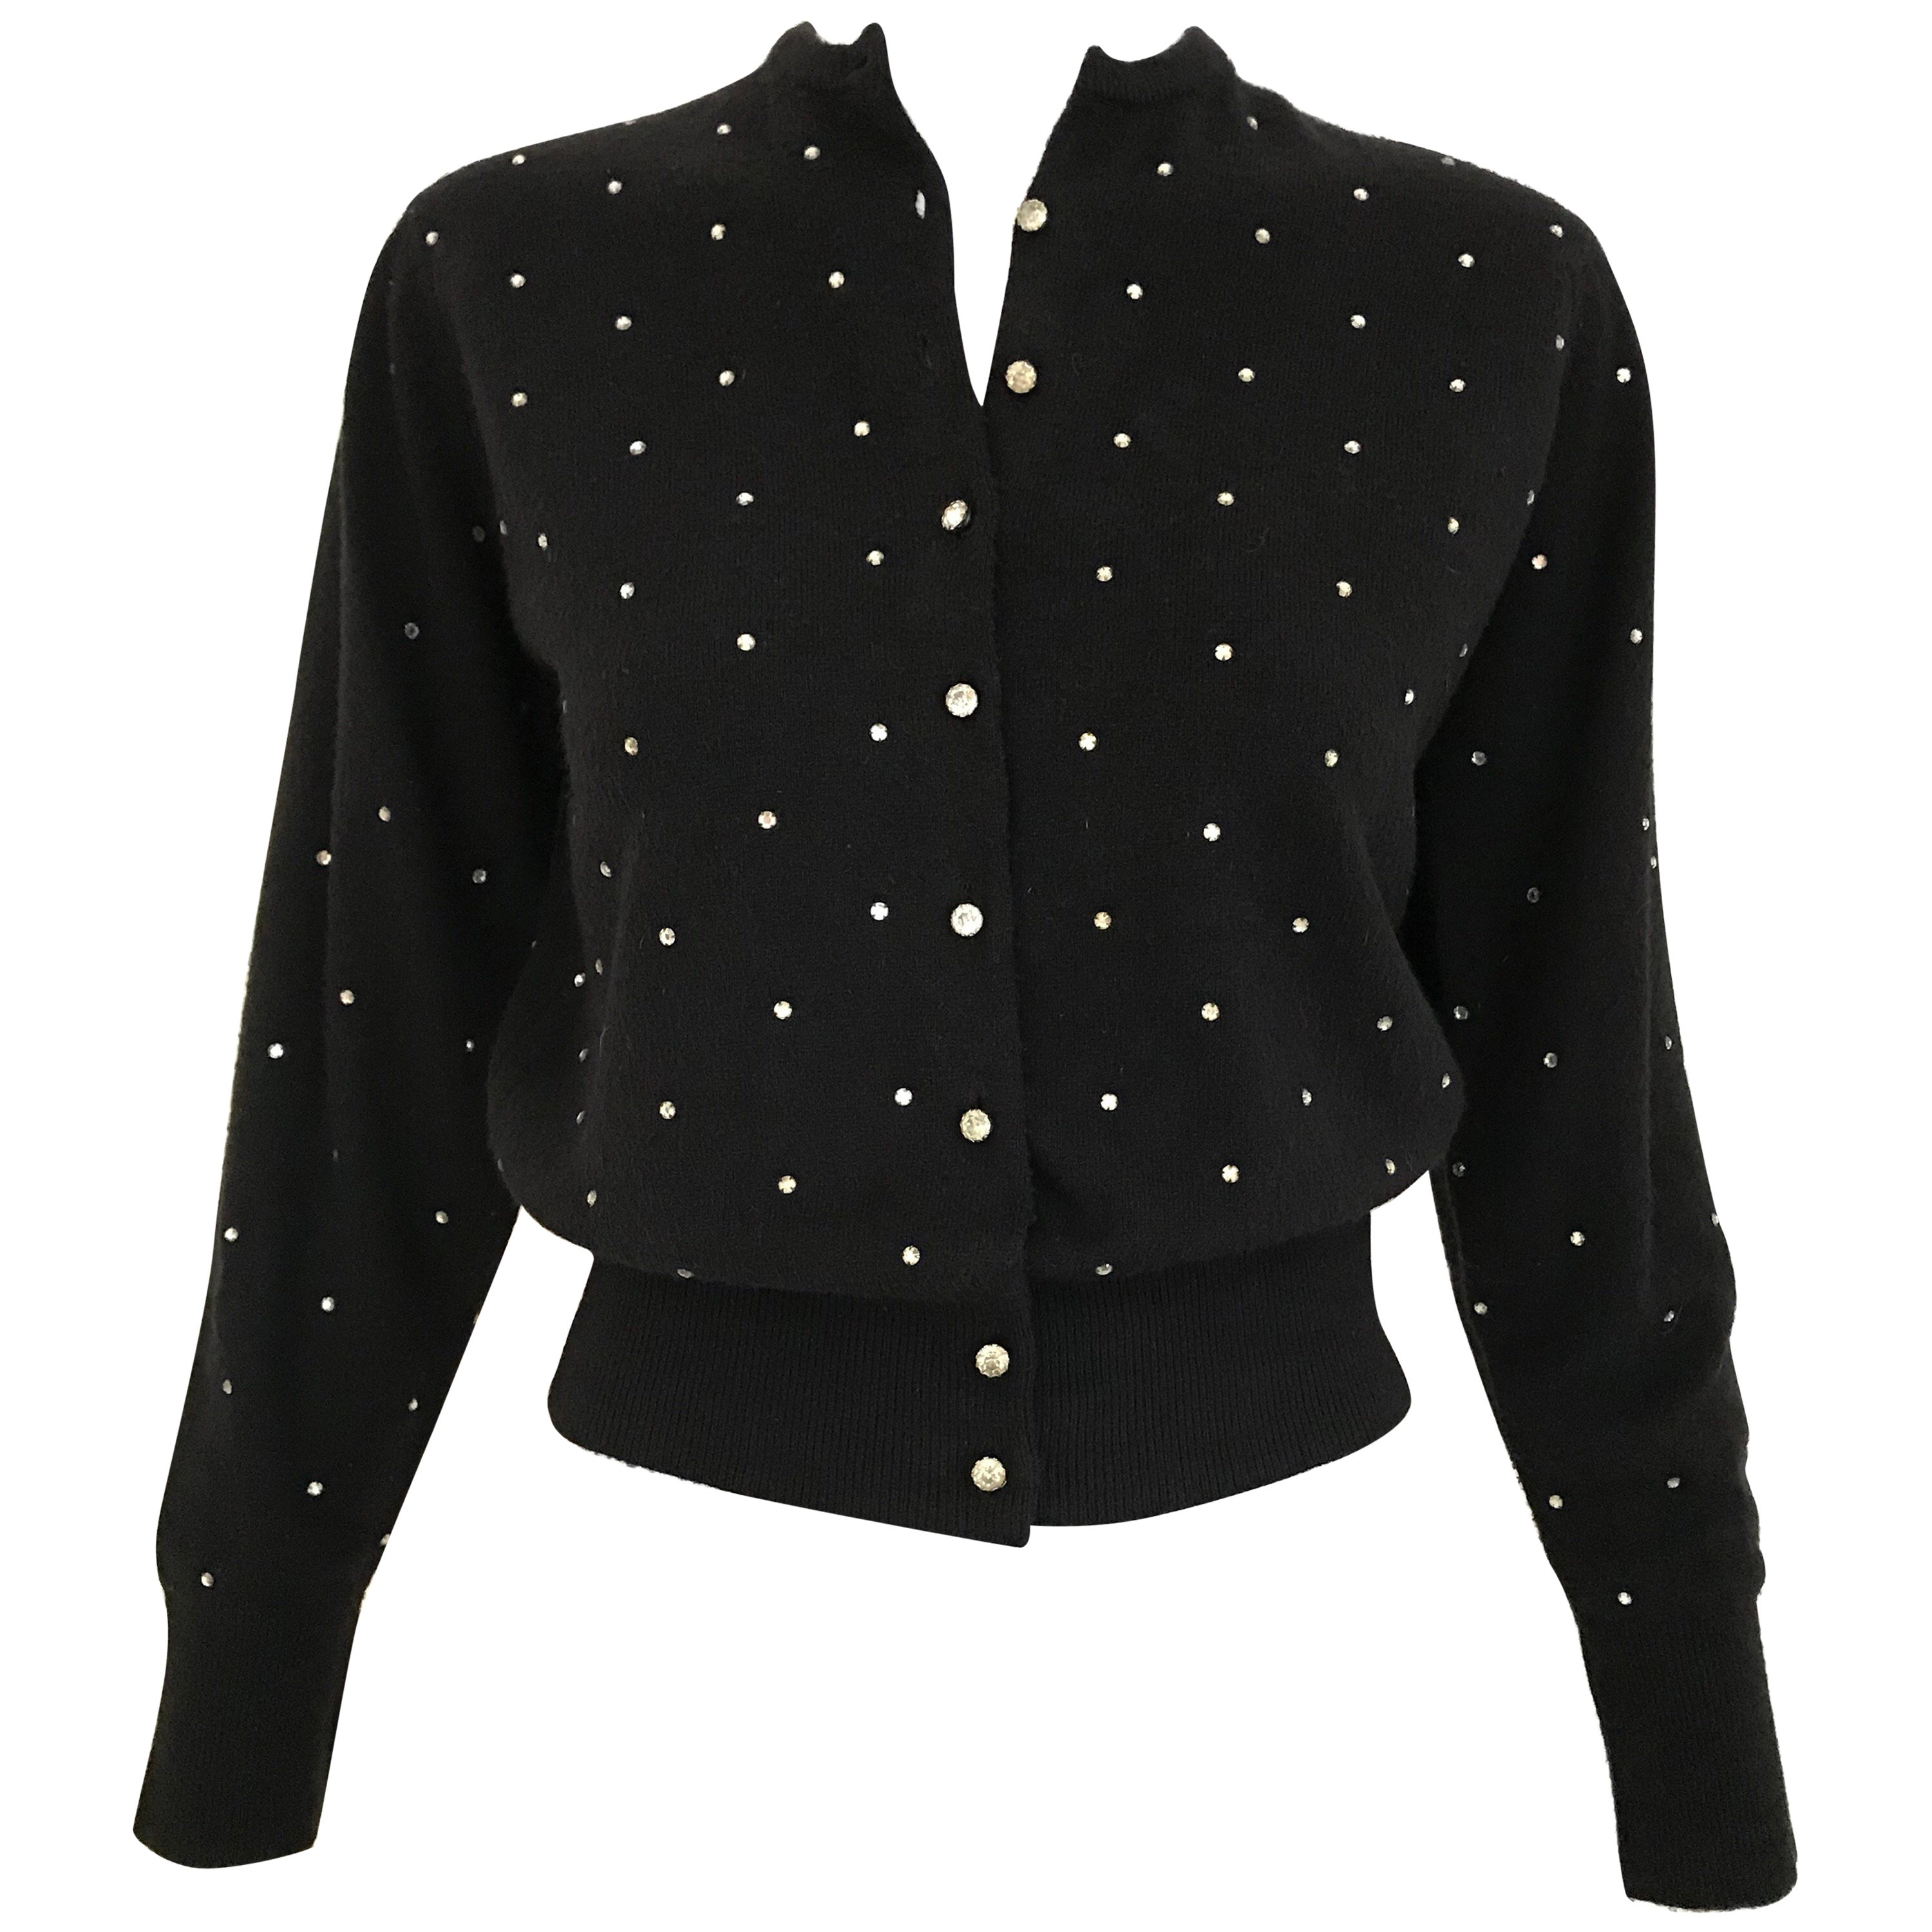 1950s Schiaparelli Black Cashmere Sweater With Rhinestones Embellishments